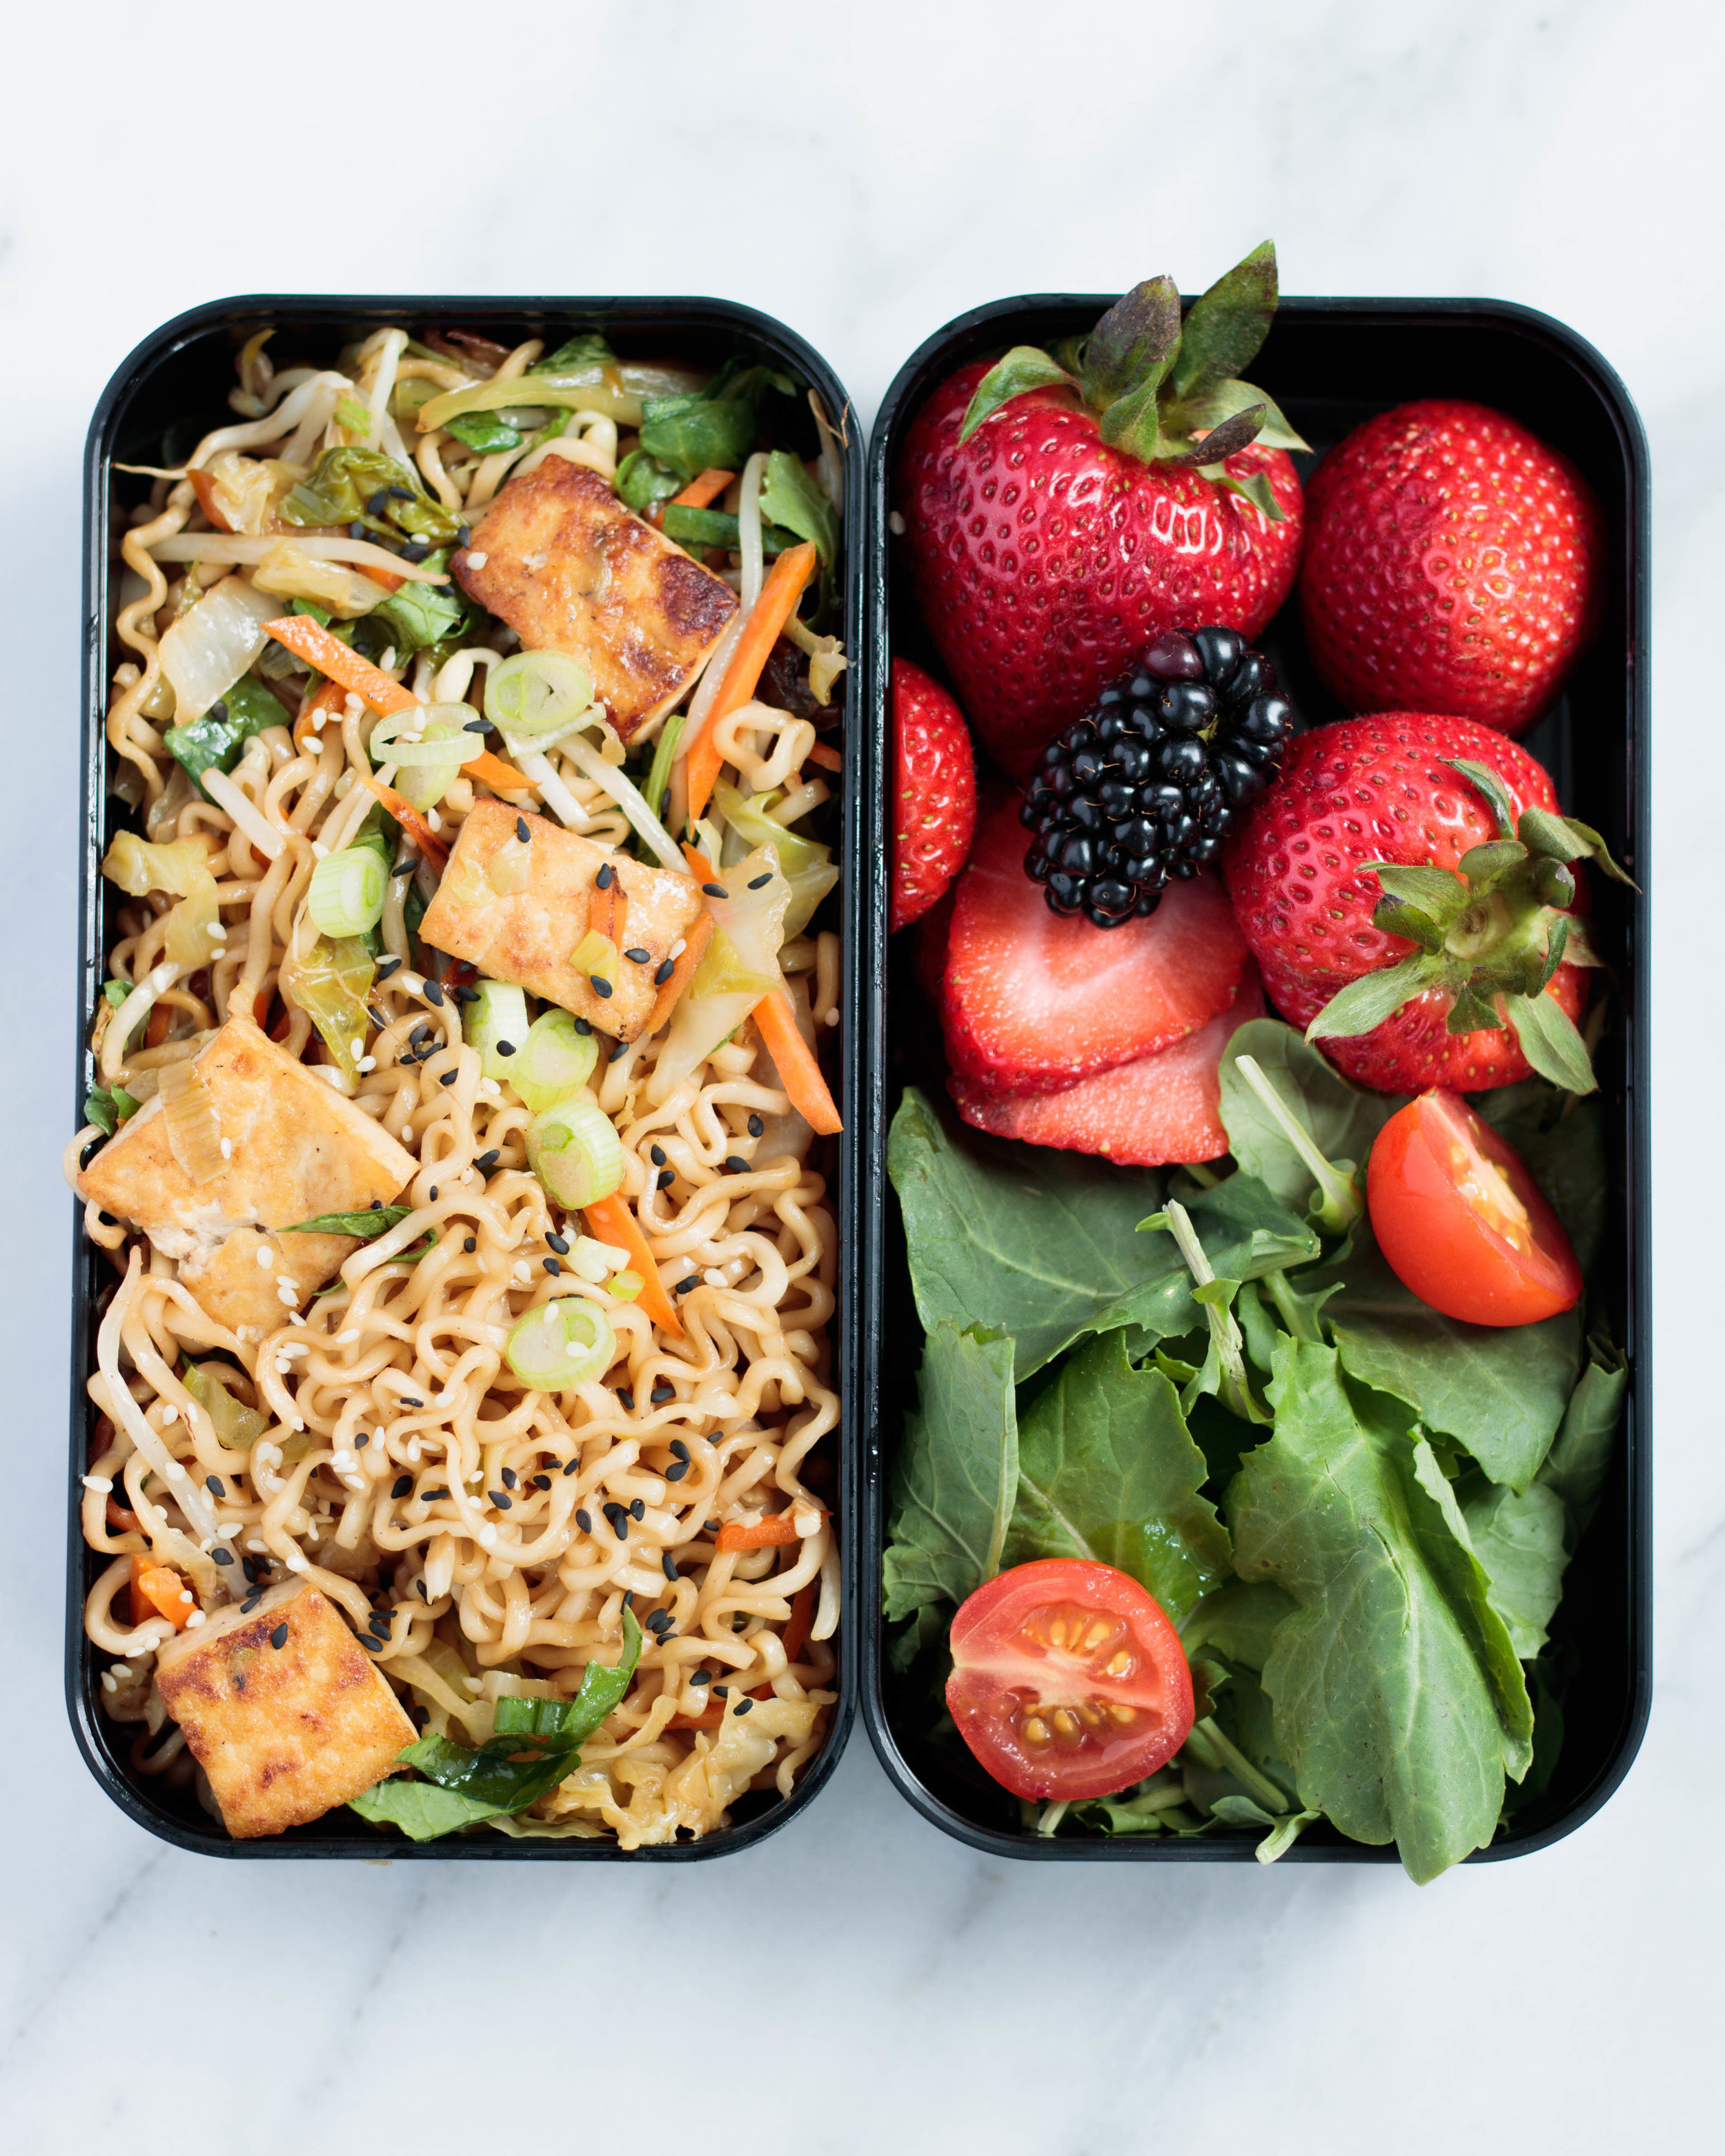 Bonus tip: Bento boxes are great for taking food on the go!